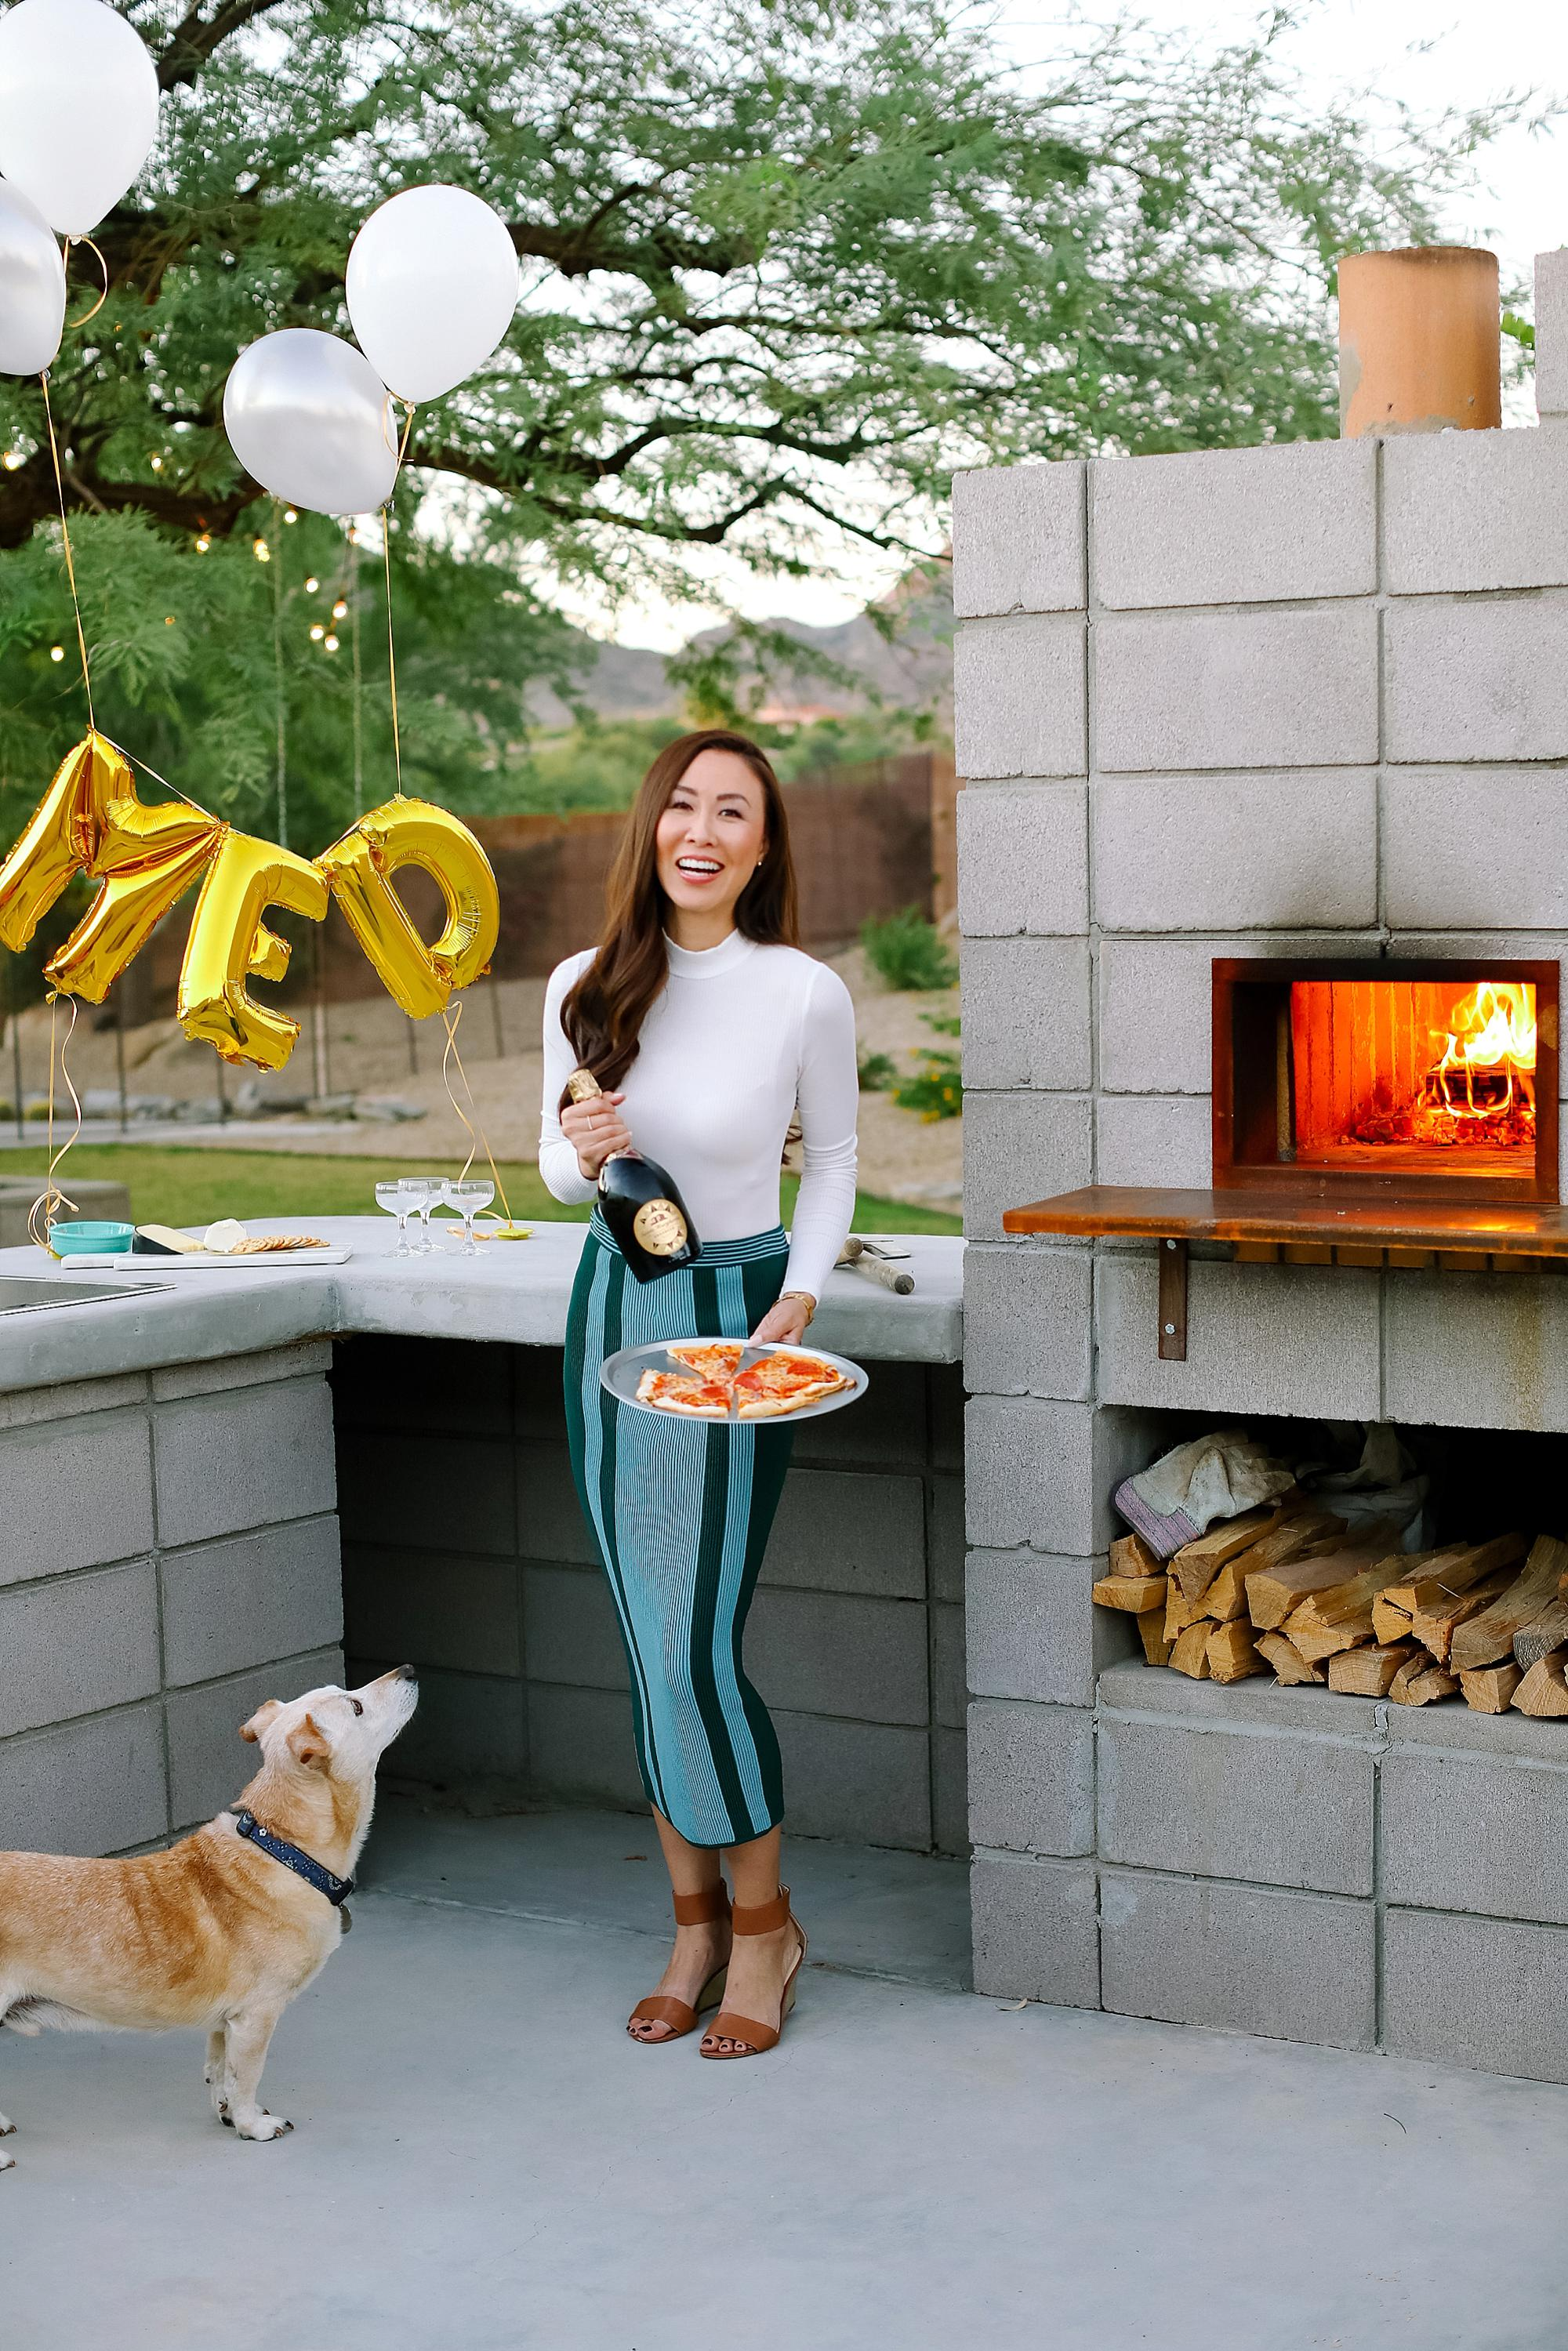 santa margherita prosecco superiore set by mylar alphabet balloons and the an outdoor pizza fireplace lifestyle blogger Diana Elizabeth in phoenix arizona holding pizza